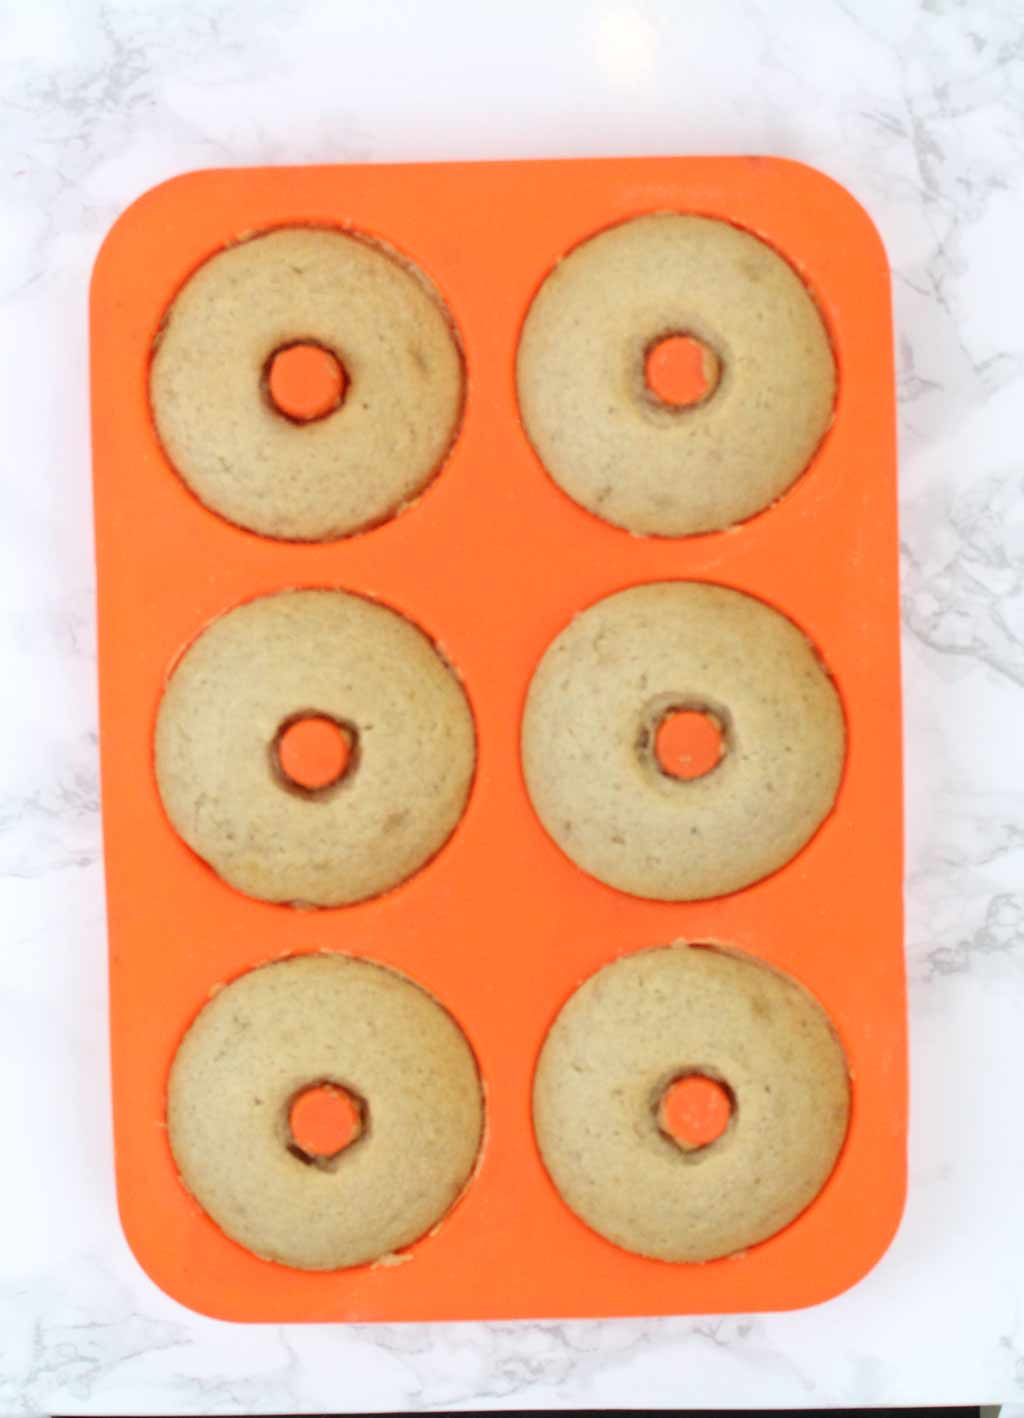 6 baked donuts in a donut mould